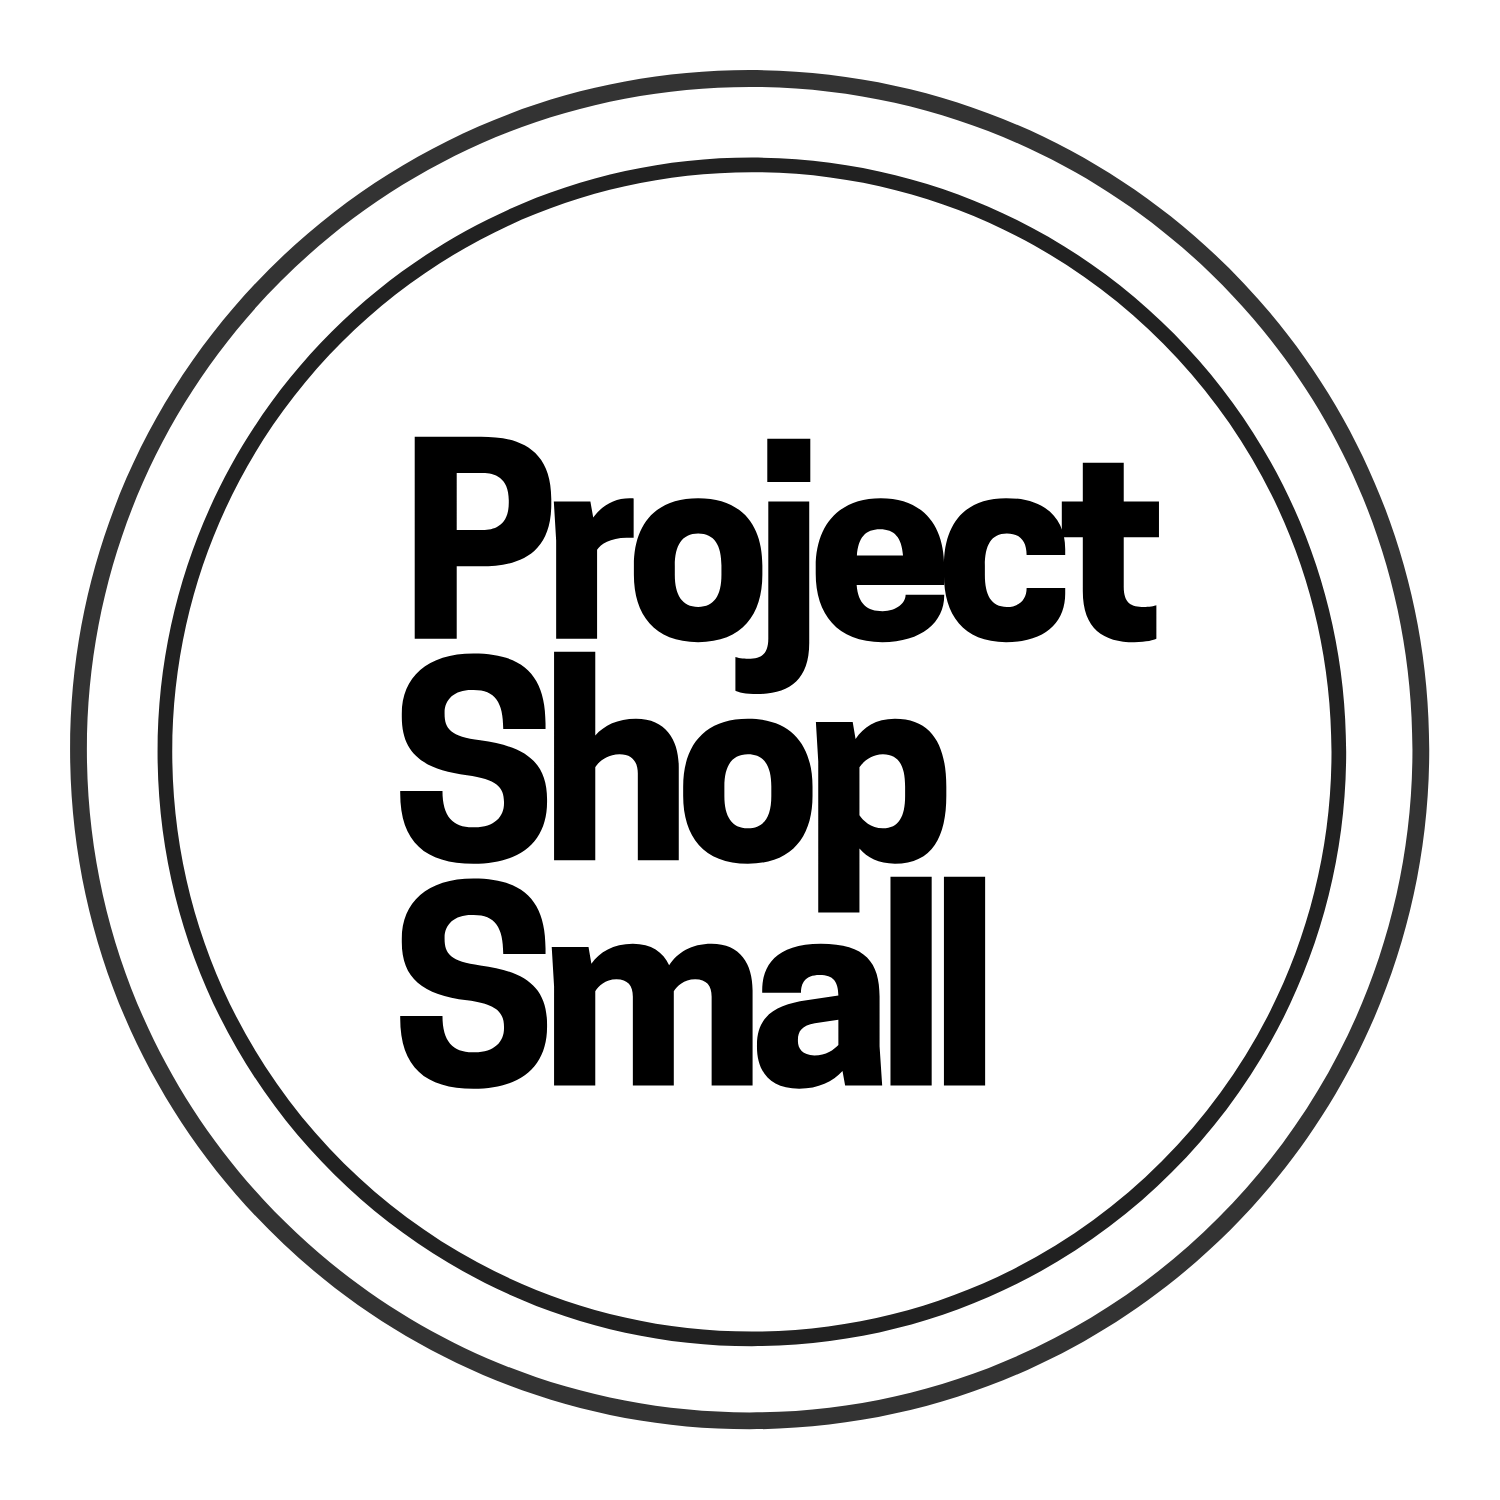 Project Shop Small